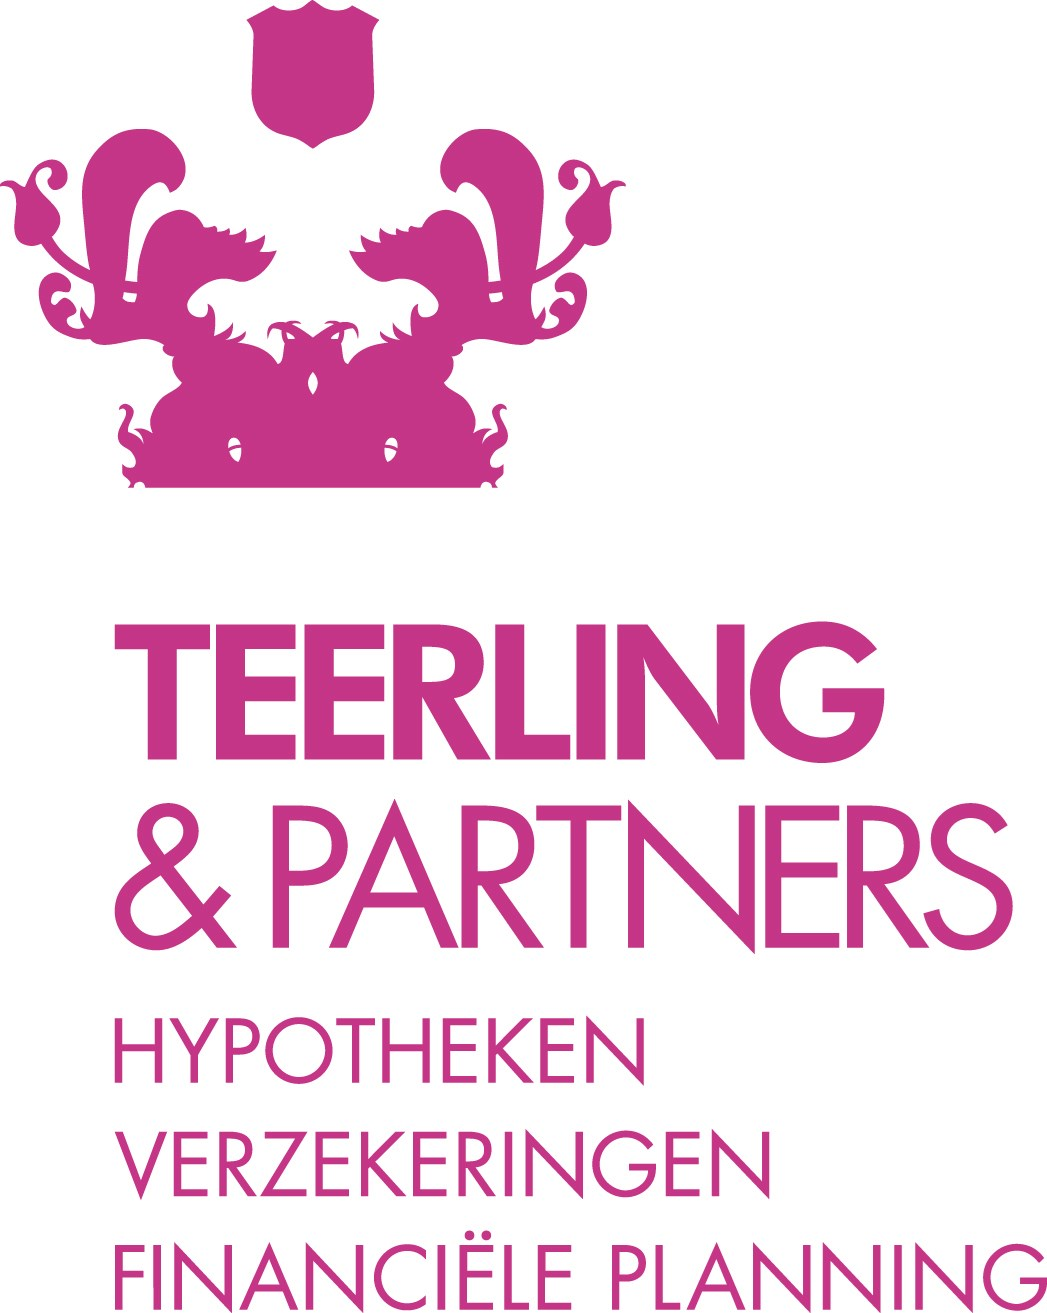 Logo van Teerling & Partners